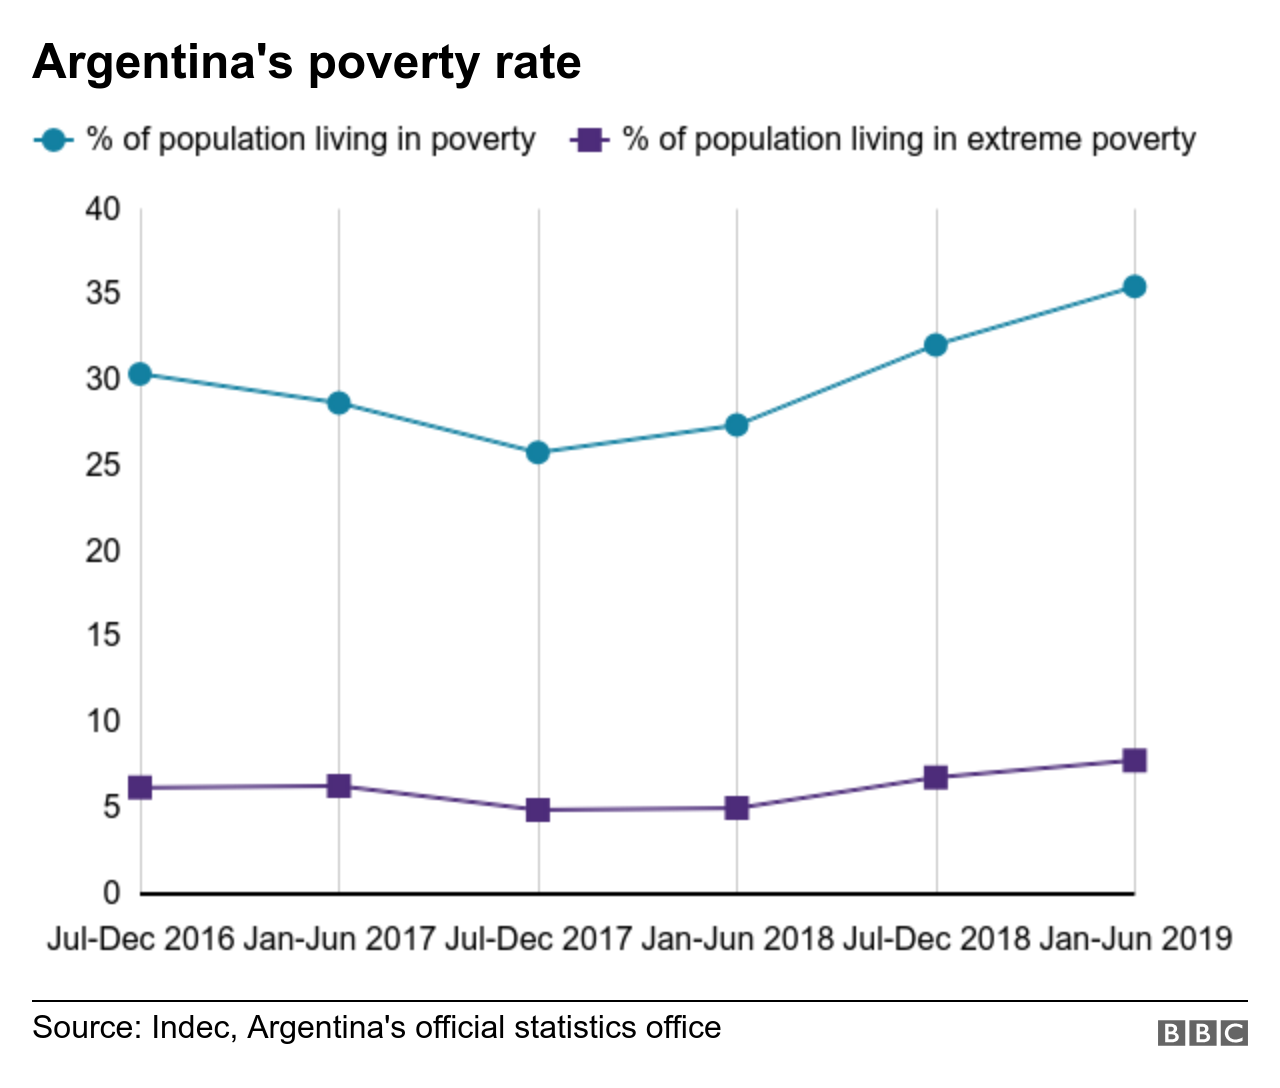 Poverty figures for Argentina, showing an uptick in early 2019 to